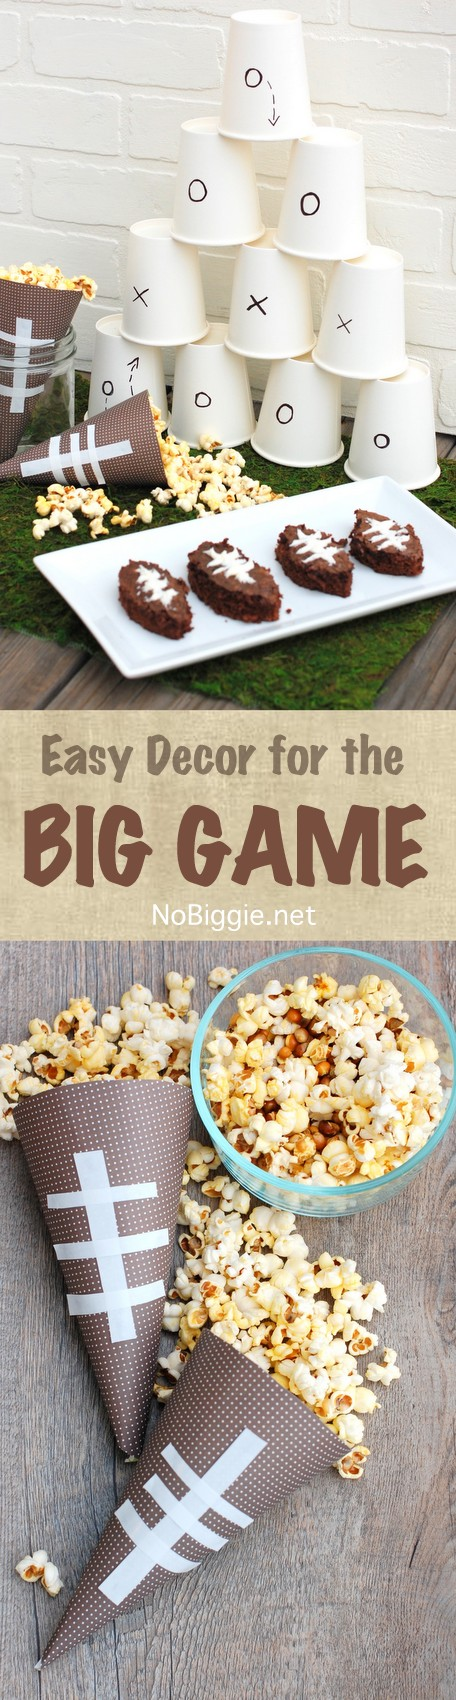 easy decor for the big game | NoBiggie.net